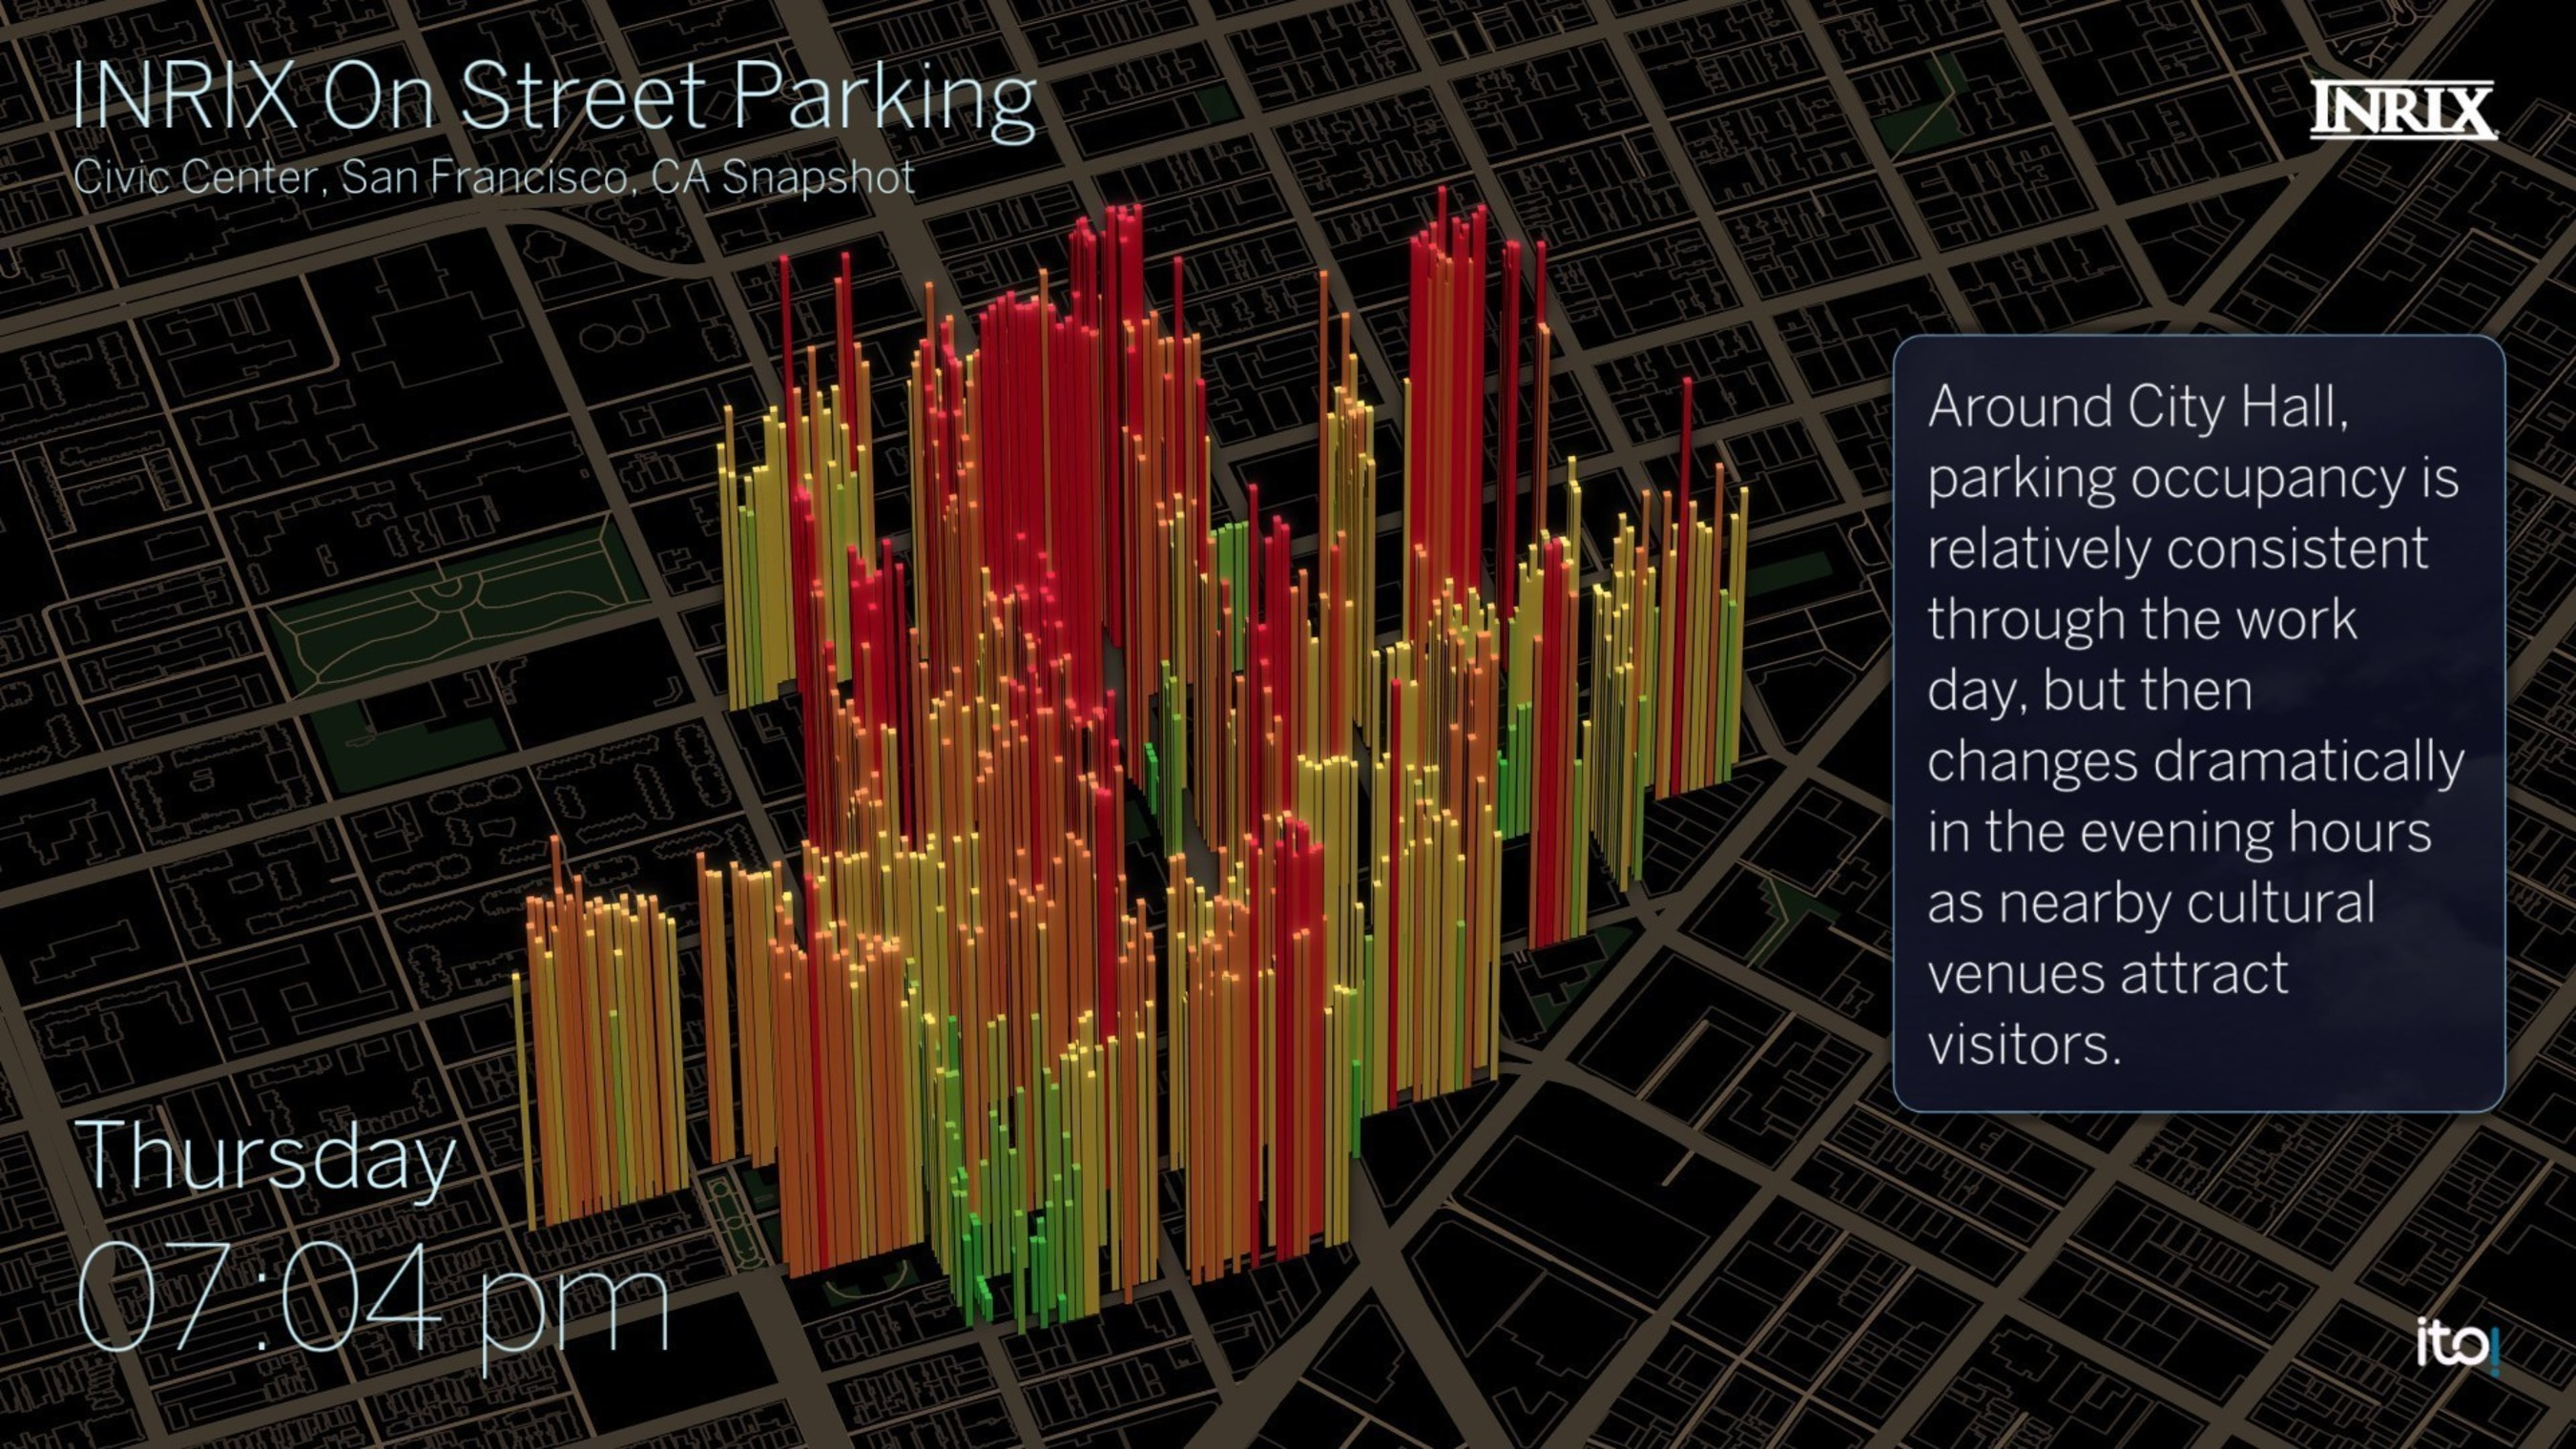 Snapshot of parking availability in San Francisco from INRIX On-Street Parking Service.  INRIX is providing an on-street parking service to automakers, navigation providers and cities that helps drivers find street parking faster in cities.  Color coded columns show probability of available spaces by block from green (high probability) to red (low probability).  Full visualization available on request